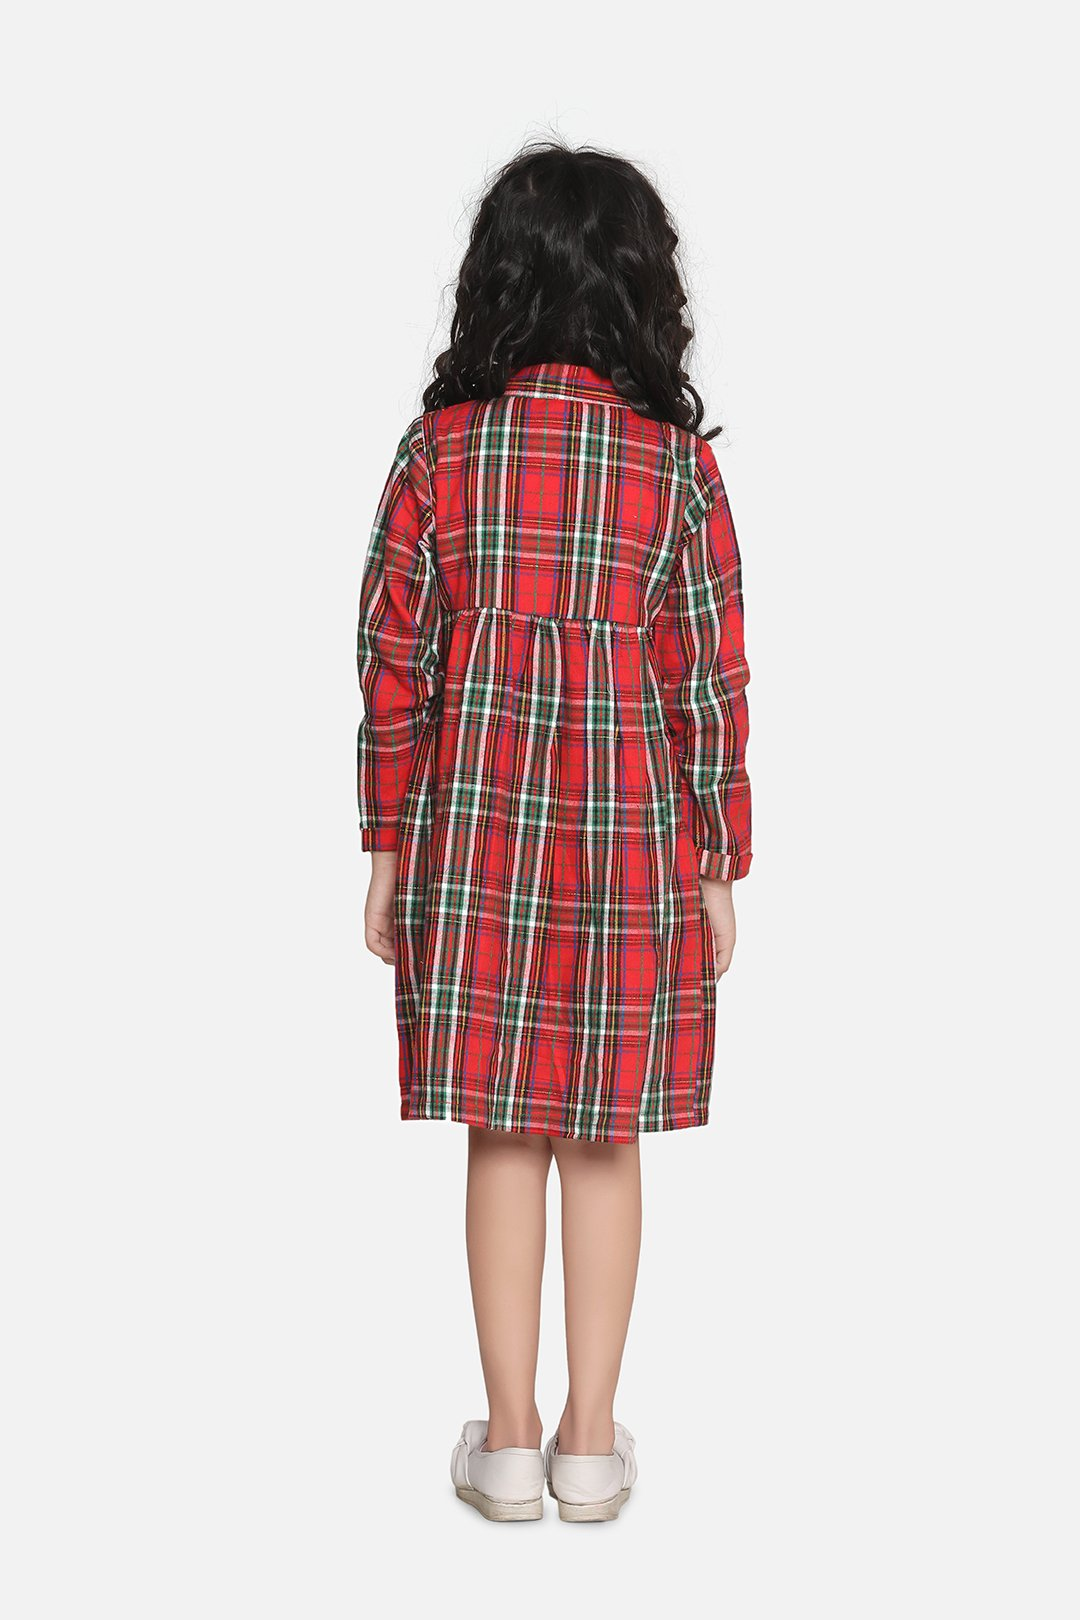 Fairies Forever Front Frill Plaid Dress-Red